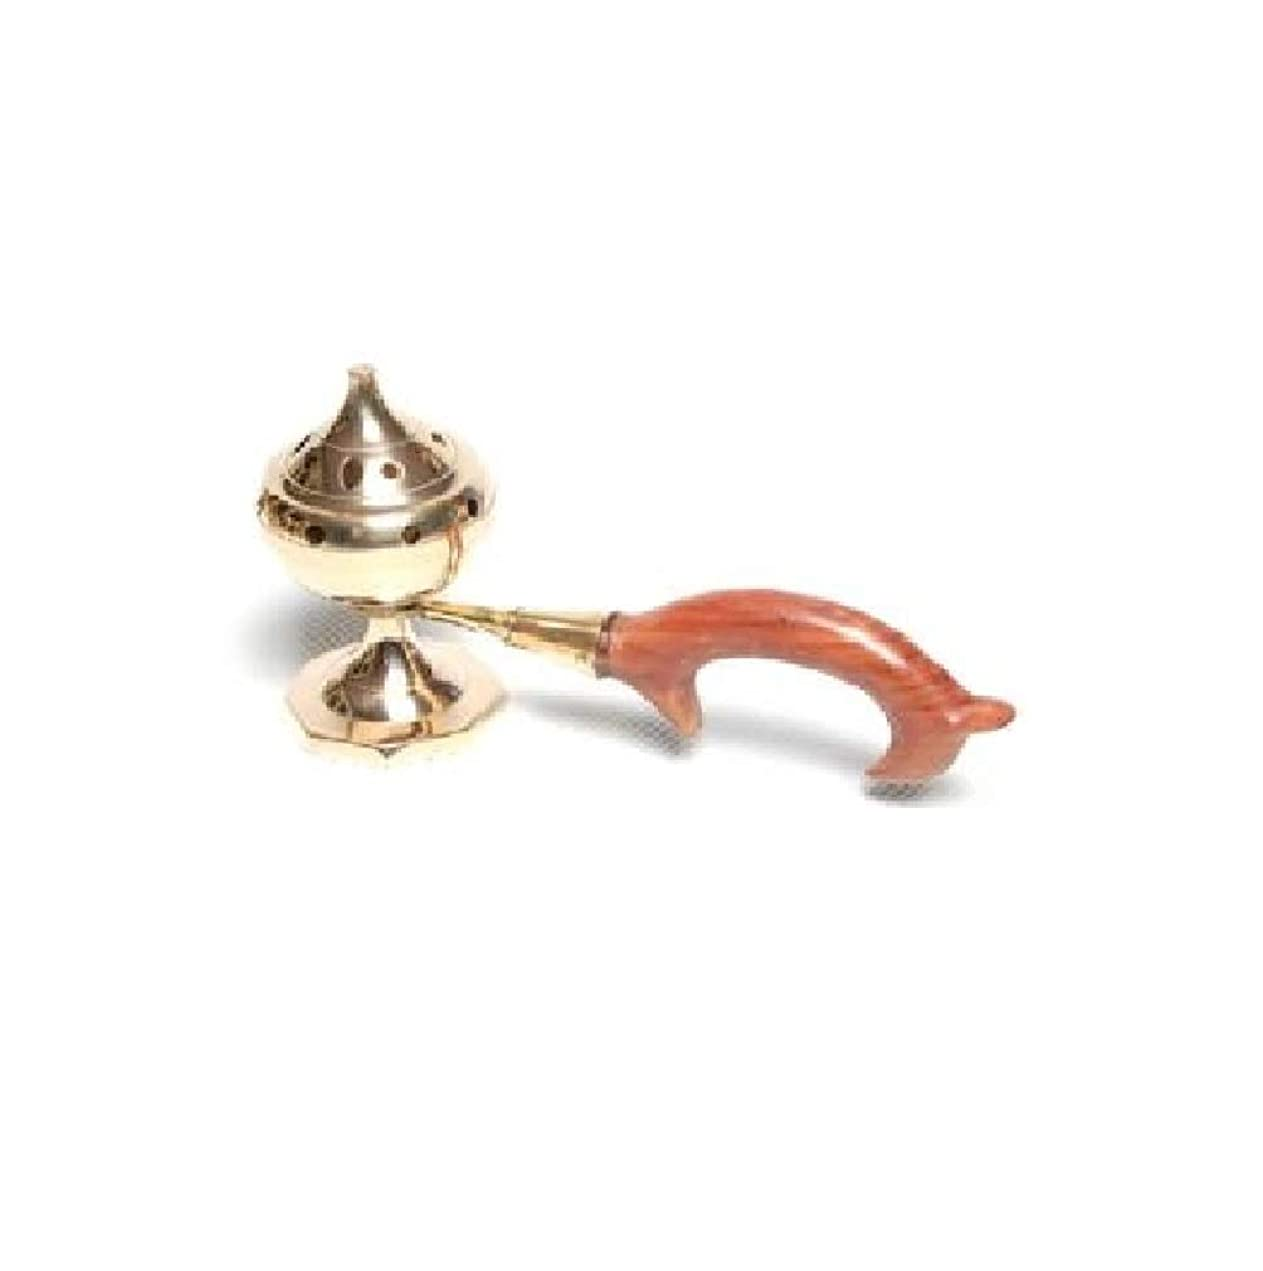 世辞平方厚くするAccessories - Brass Burners Incense Burner with Wood Handle by Accessories - Brass Burners